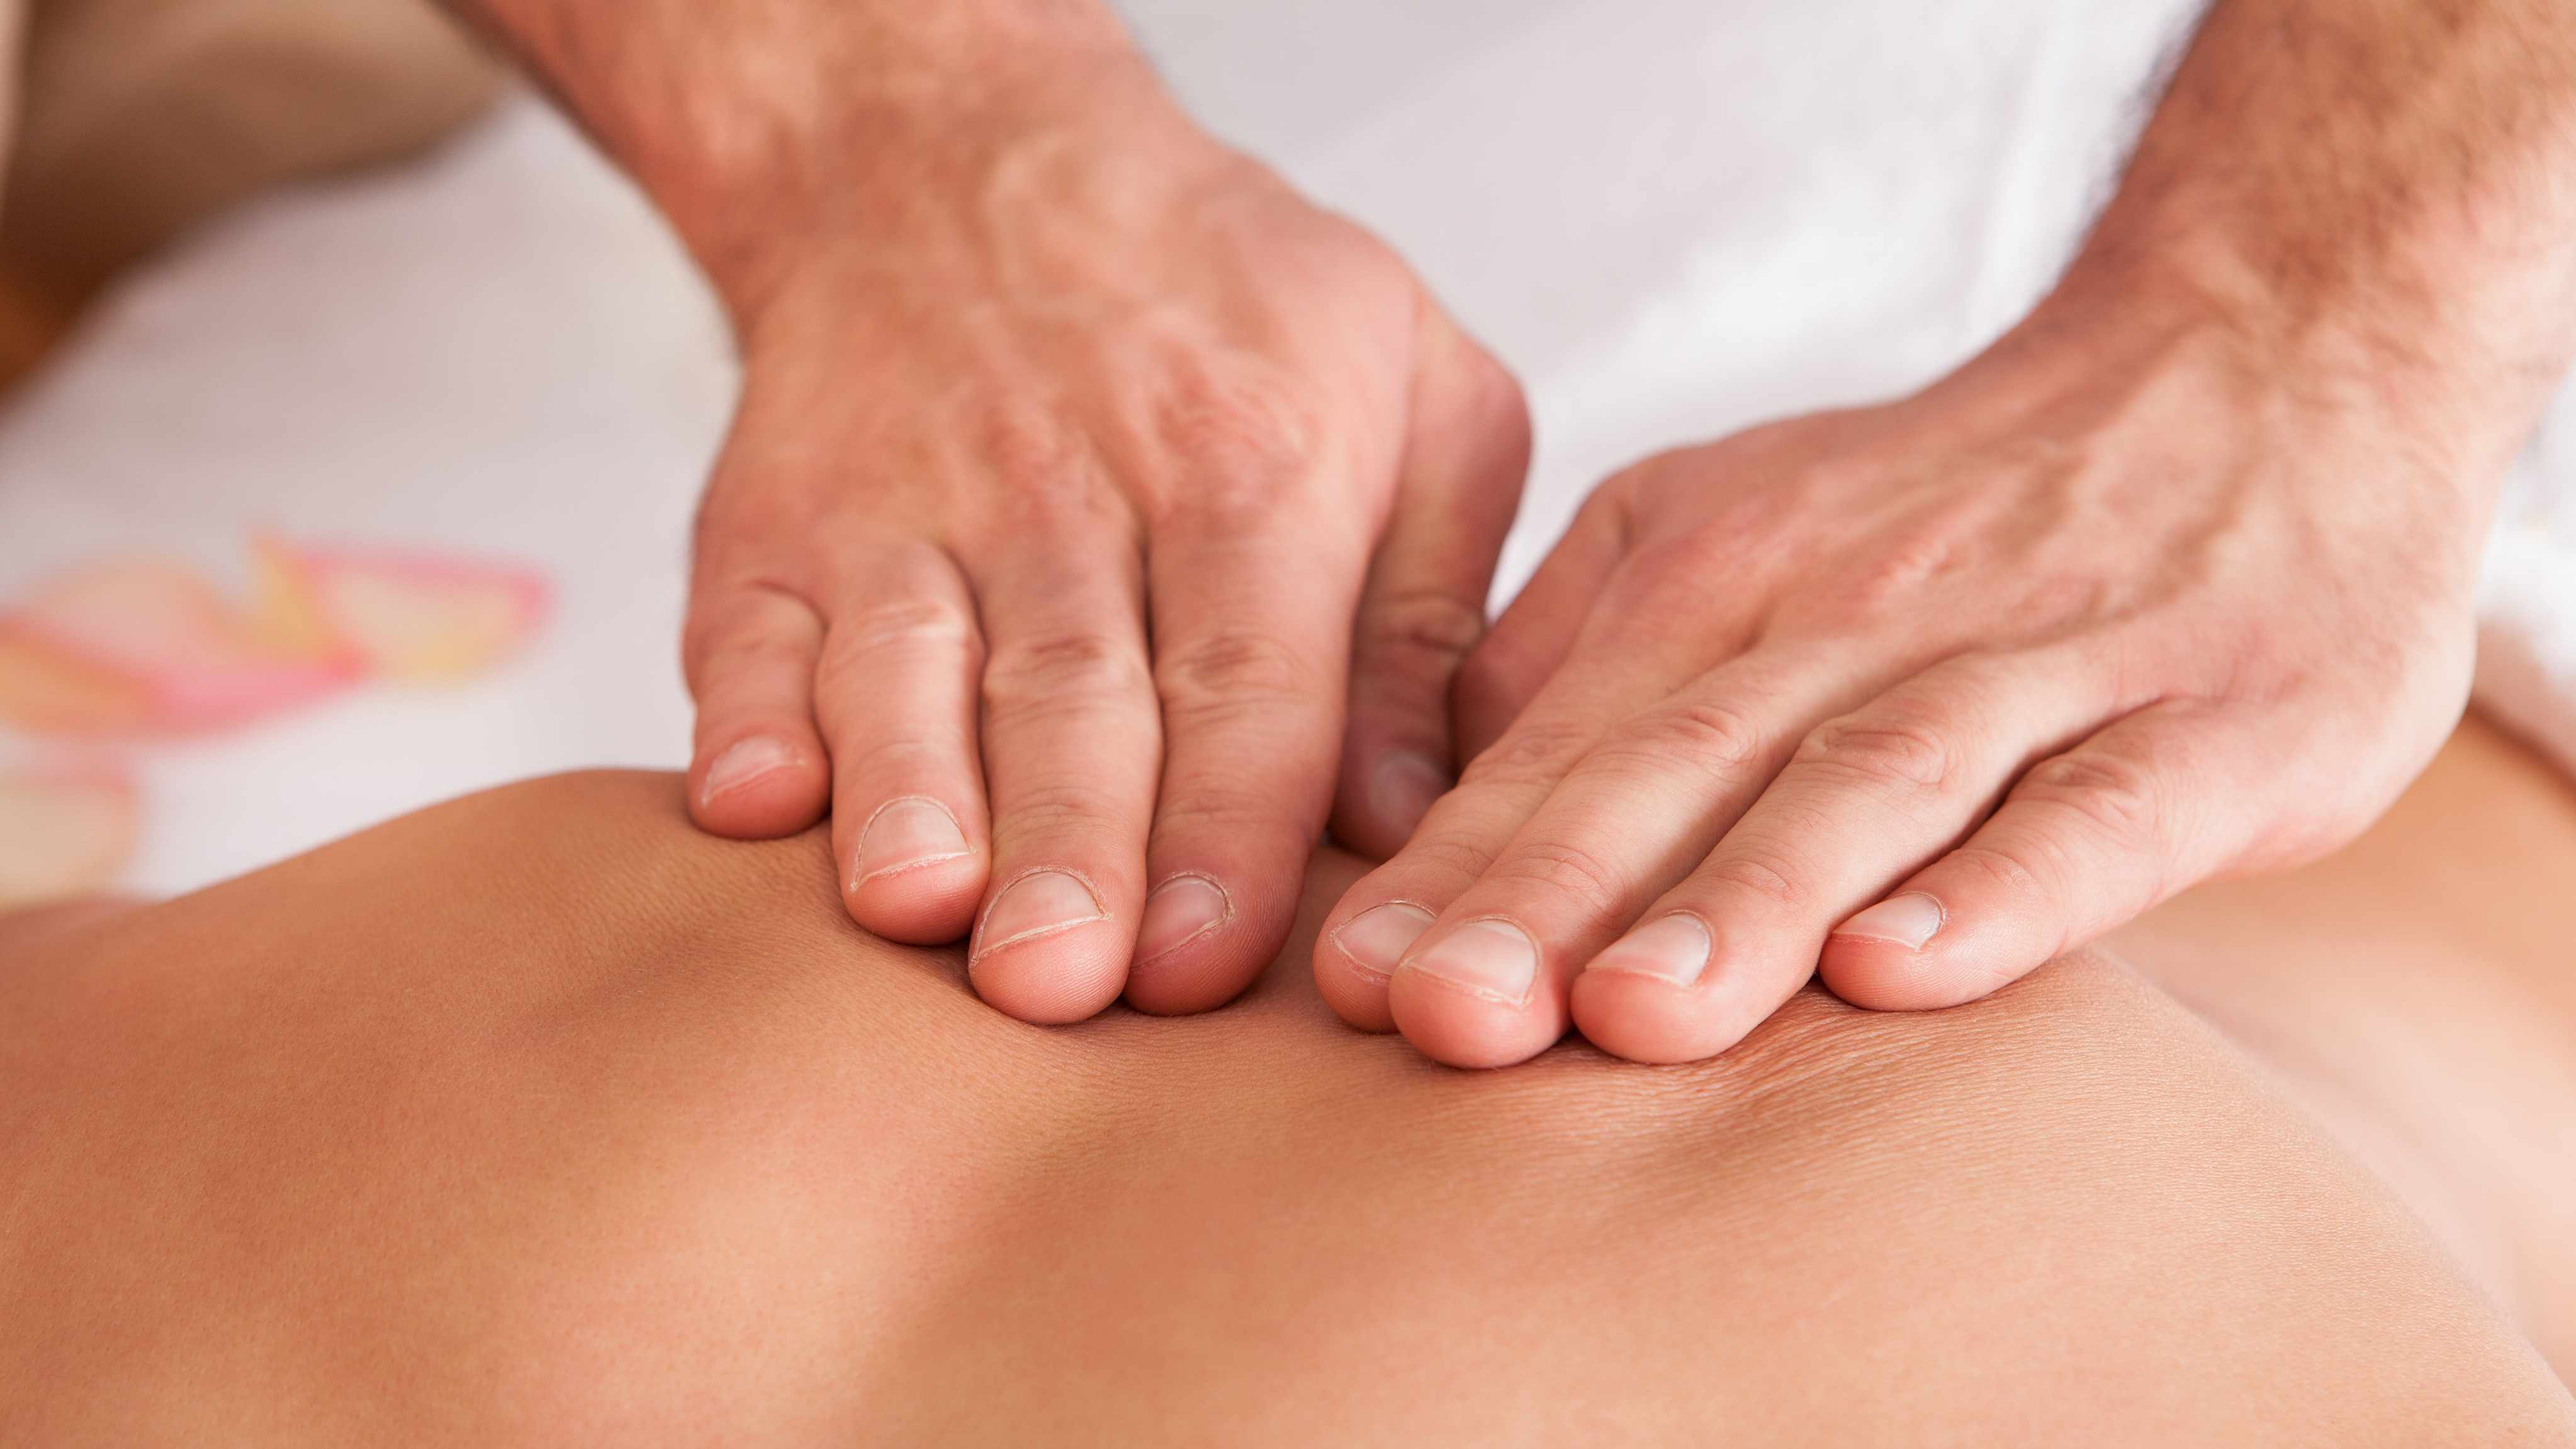 two hands pressing on a bare back